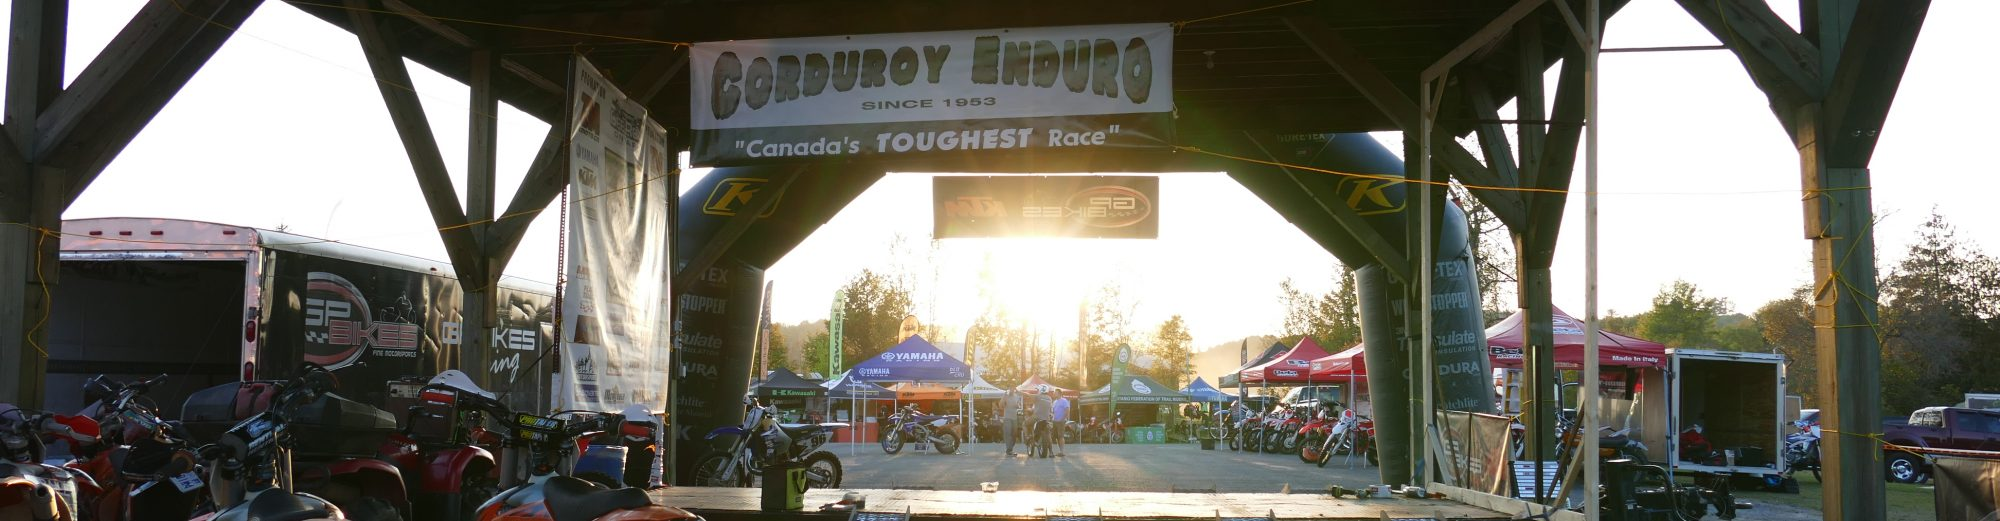 The Corduroy Enduro®